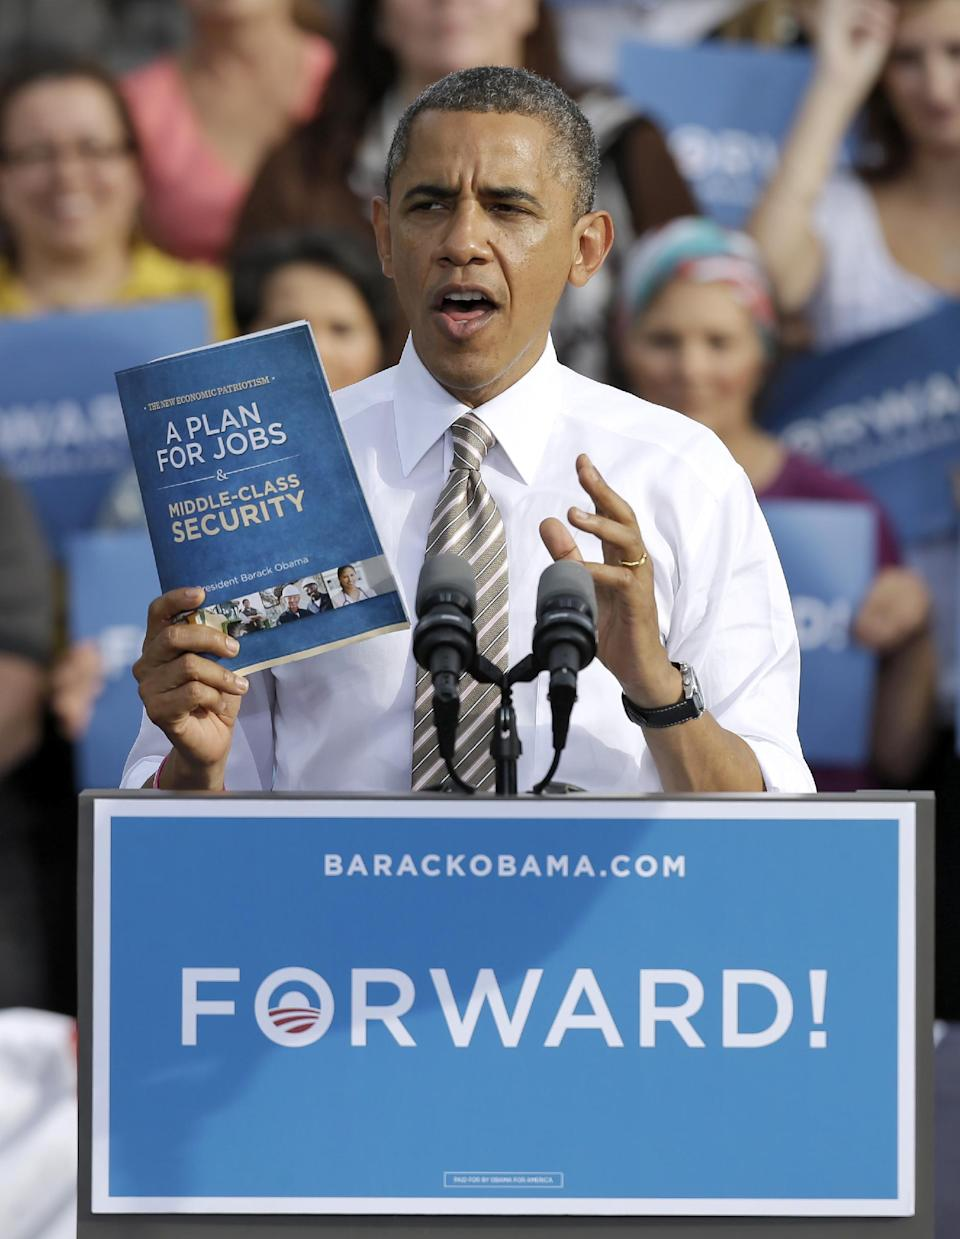 President Obama holds up his jobs plans booklet while speaking at a campaign stop, Thursday, Oct. 25, 2012, in Tampa, Fla. (AP Photo/Chris O'Meara)